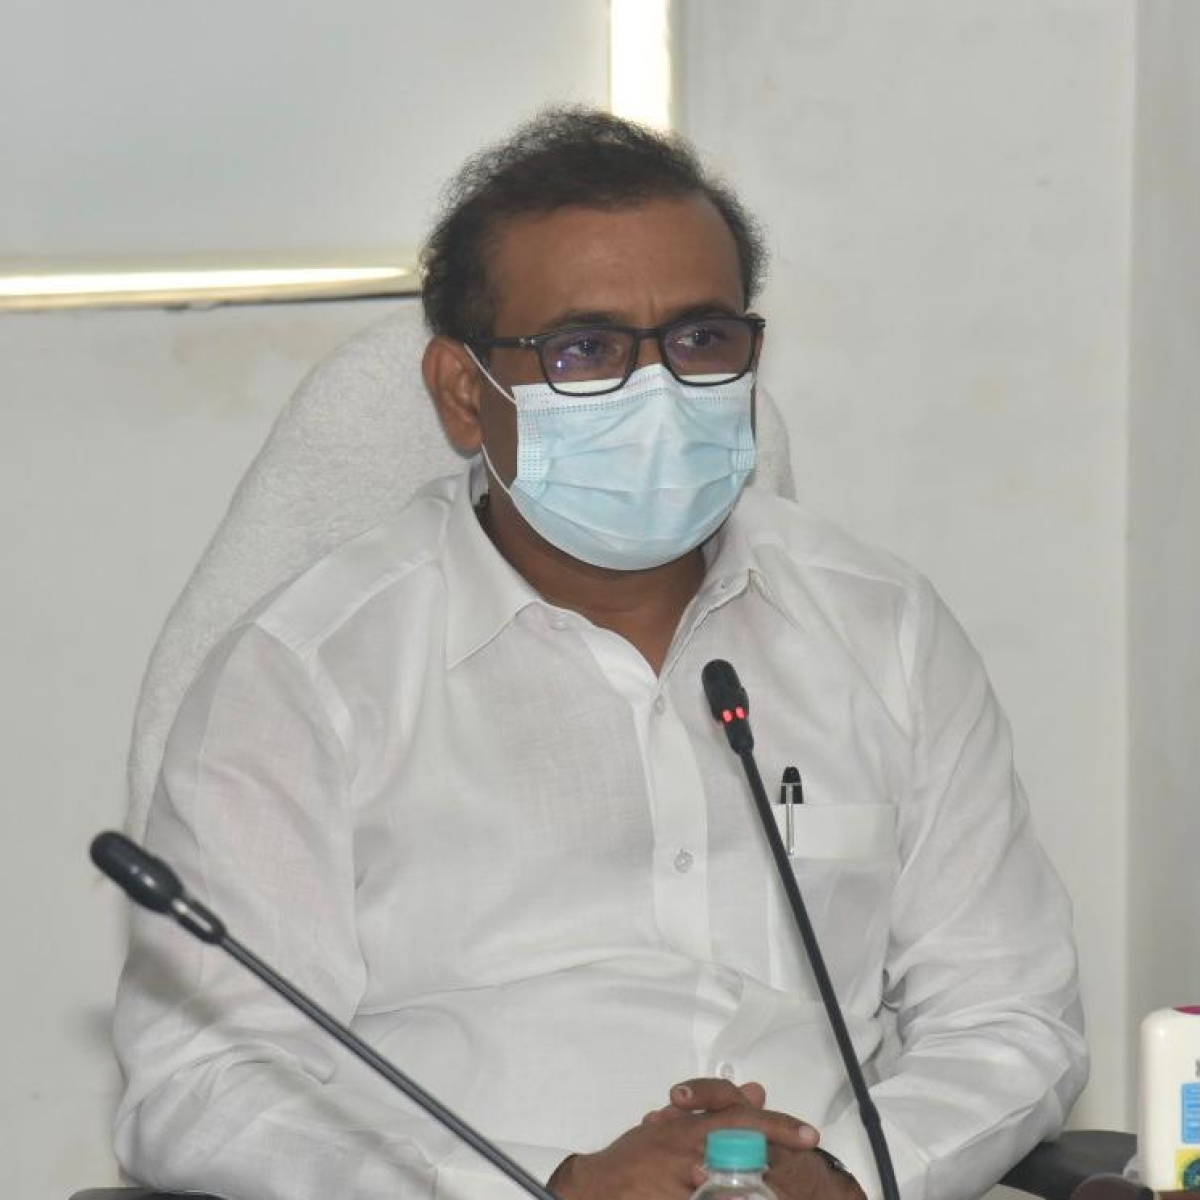 Dry run for COVID-19 vaccination conducted at 114 places across Maharashtra: Health Minister Rajesh Tope